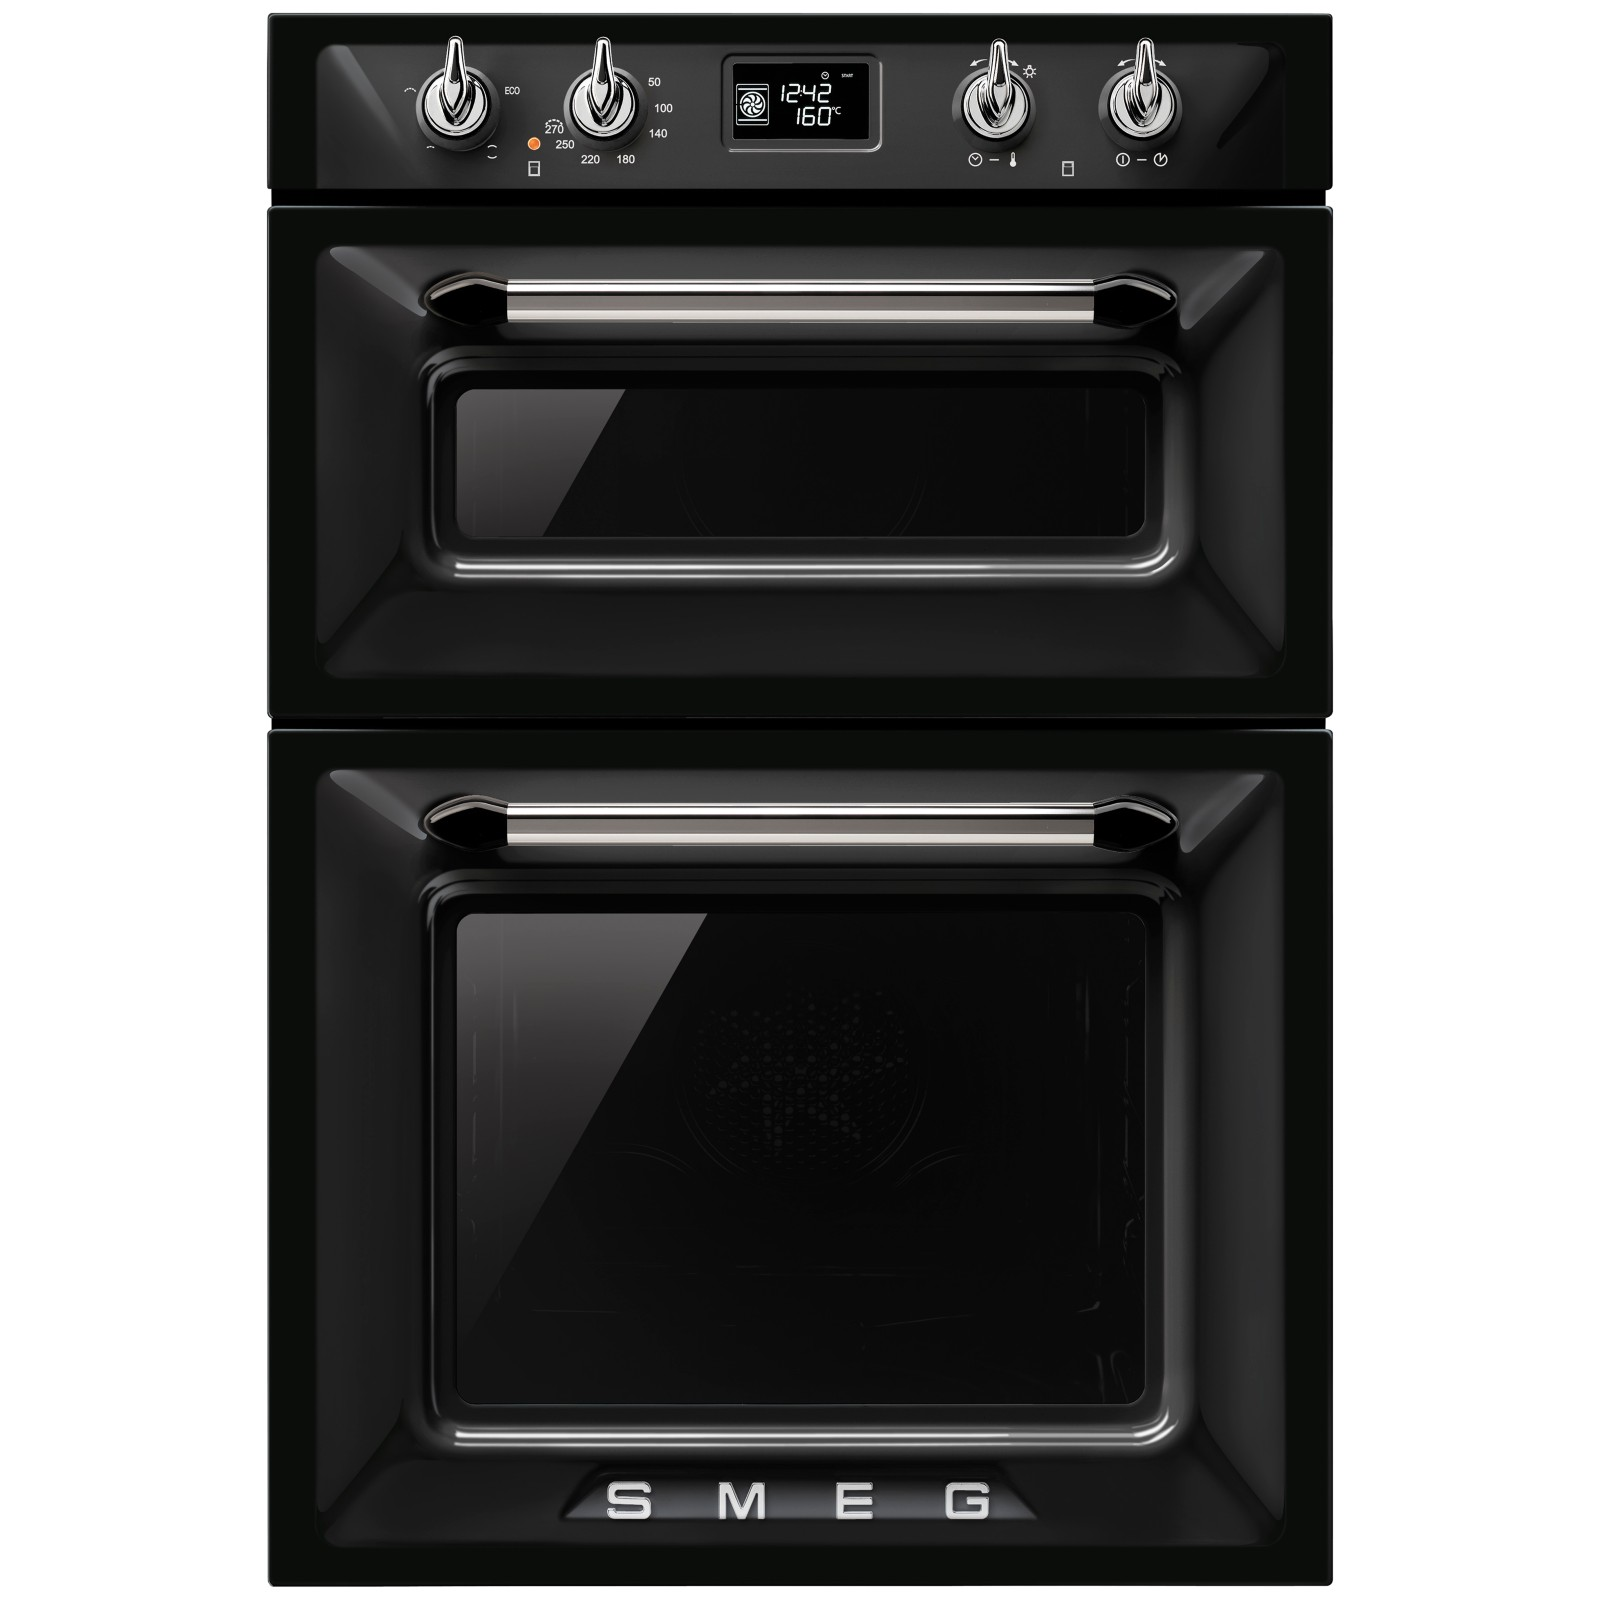 Smeg DOSF6920N Victoria Built-In Multifunction Double Oven